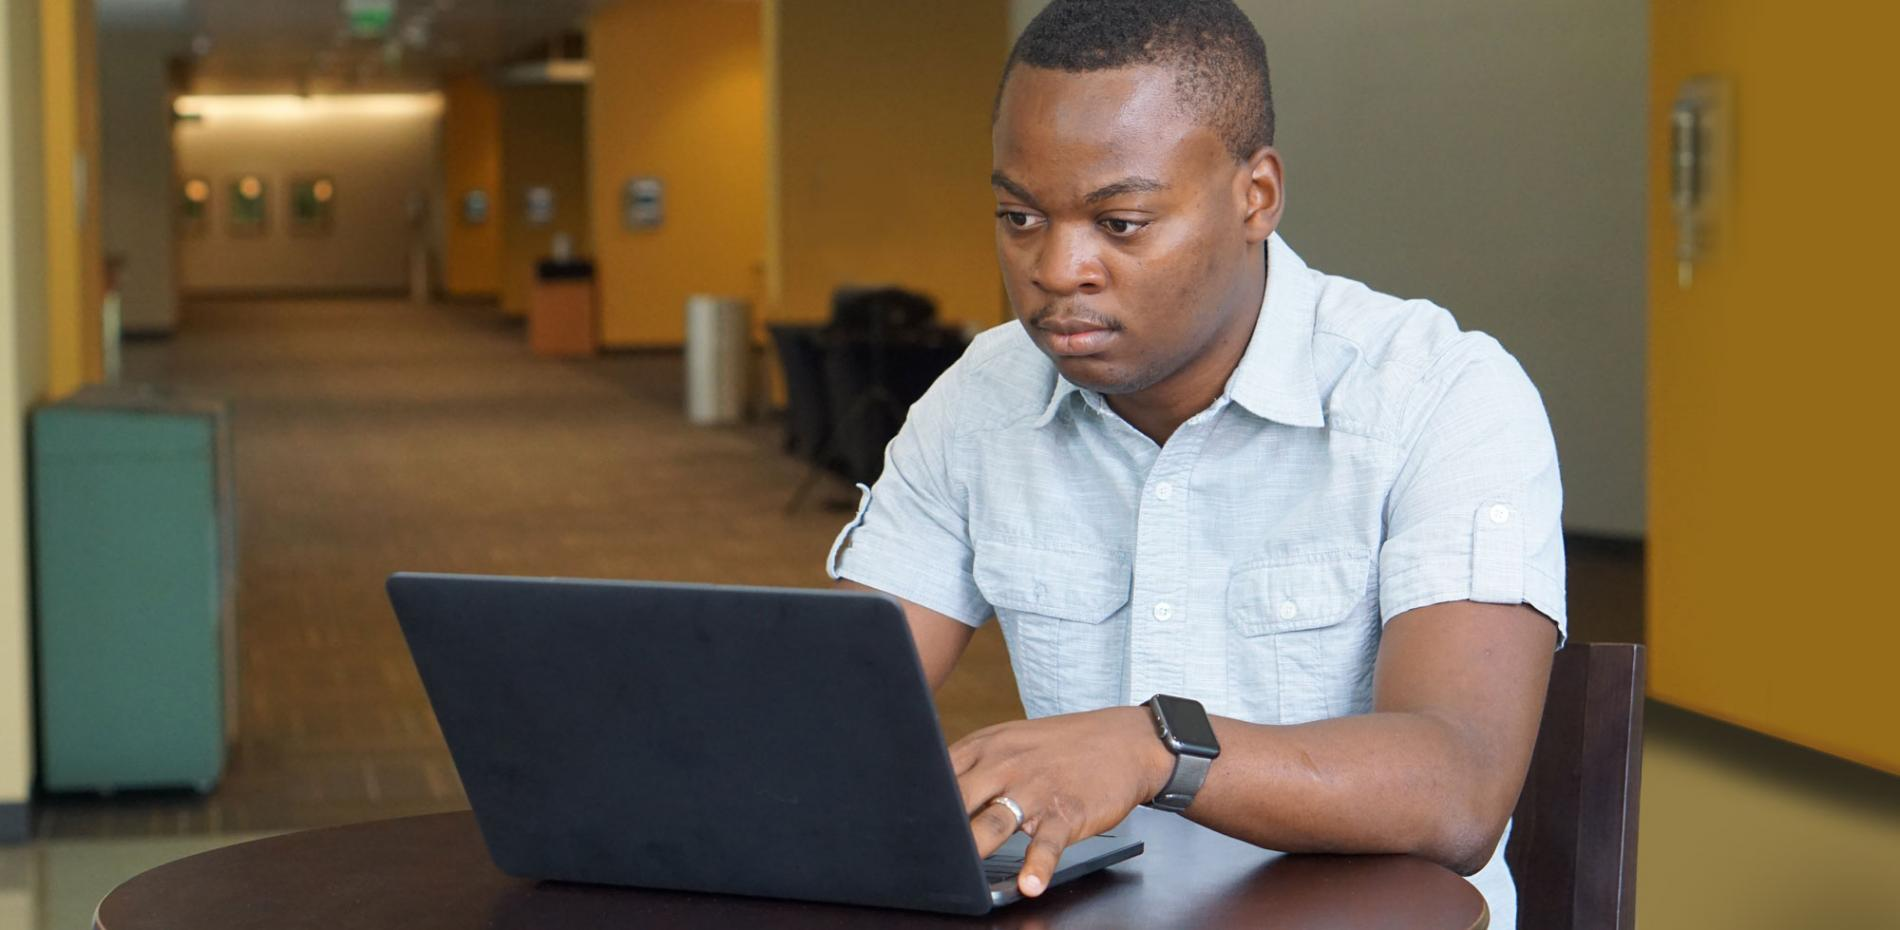 Esterling Accime working in front of laptop